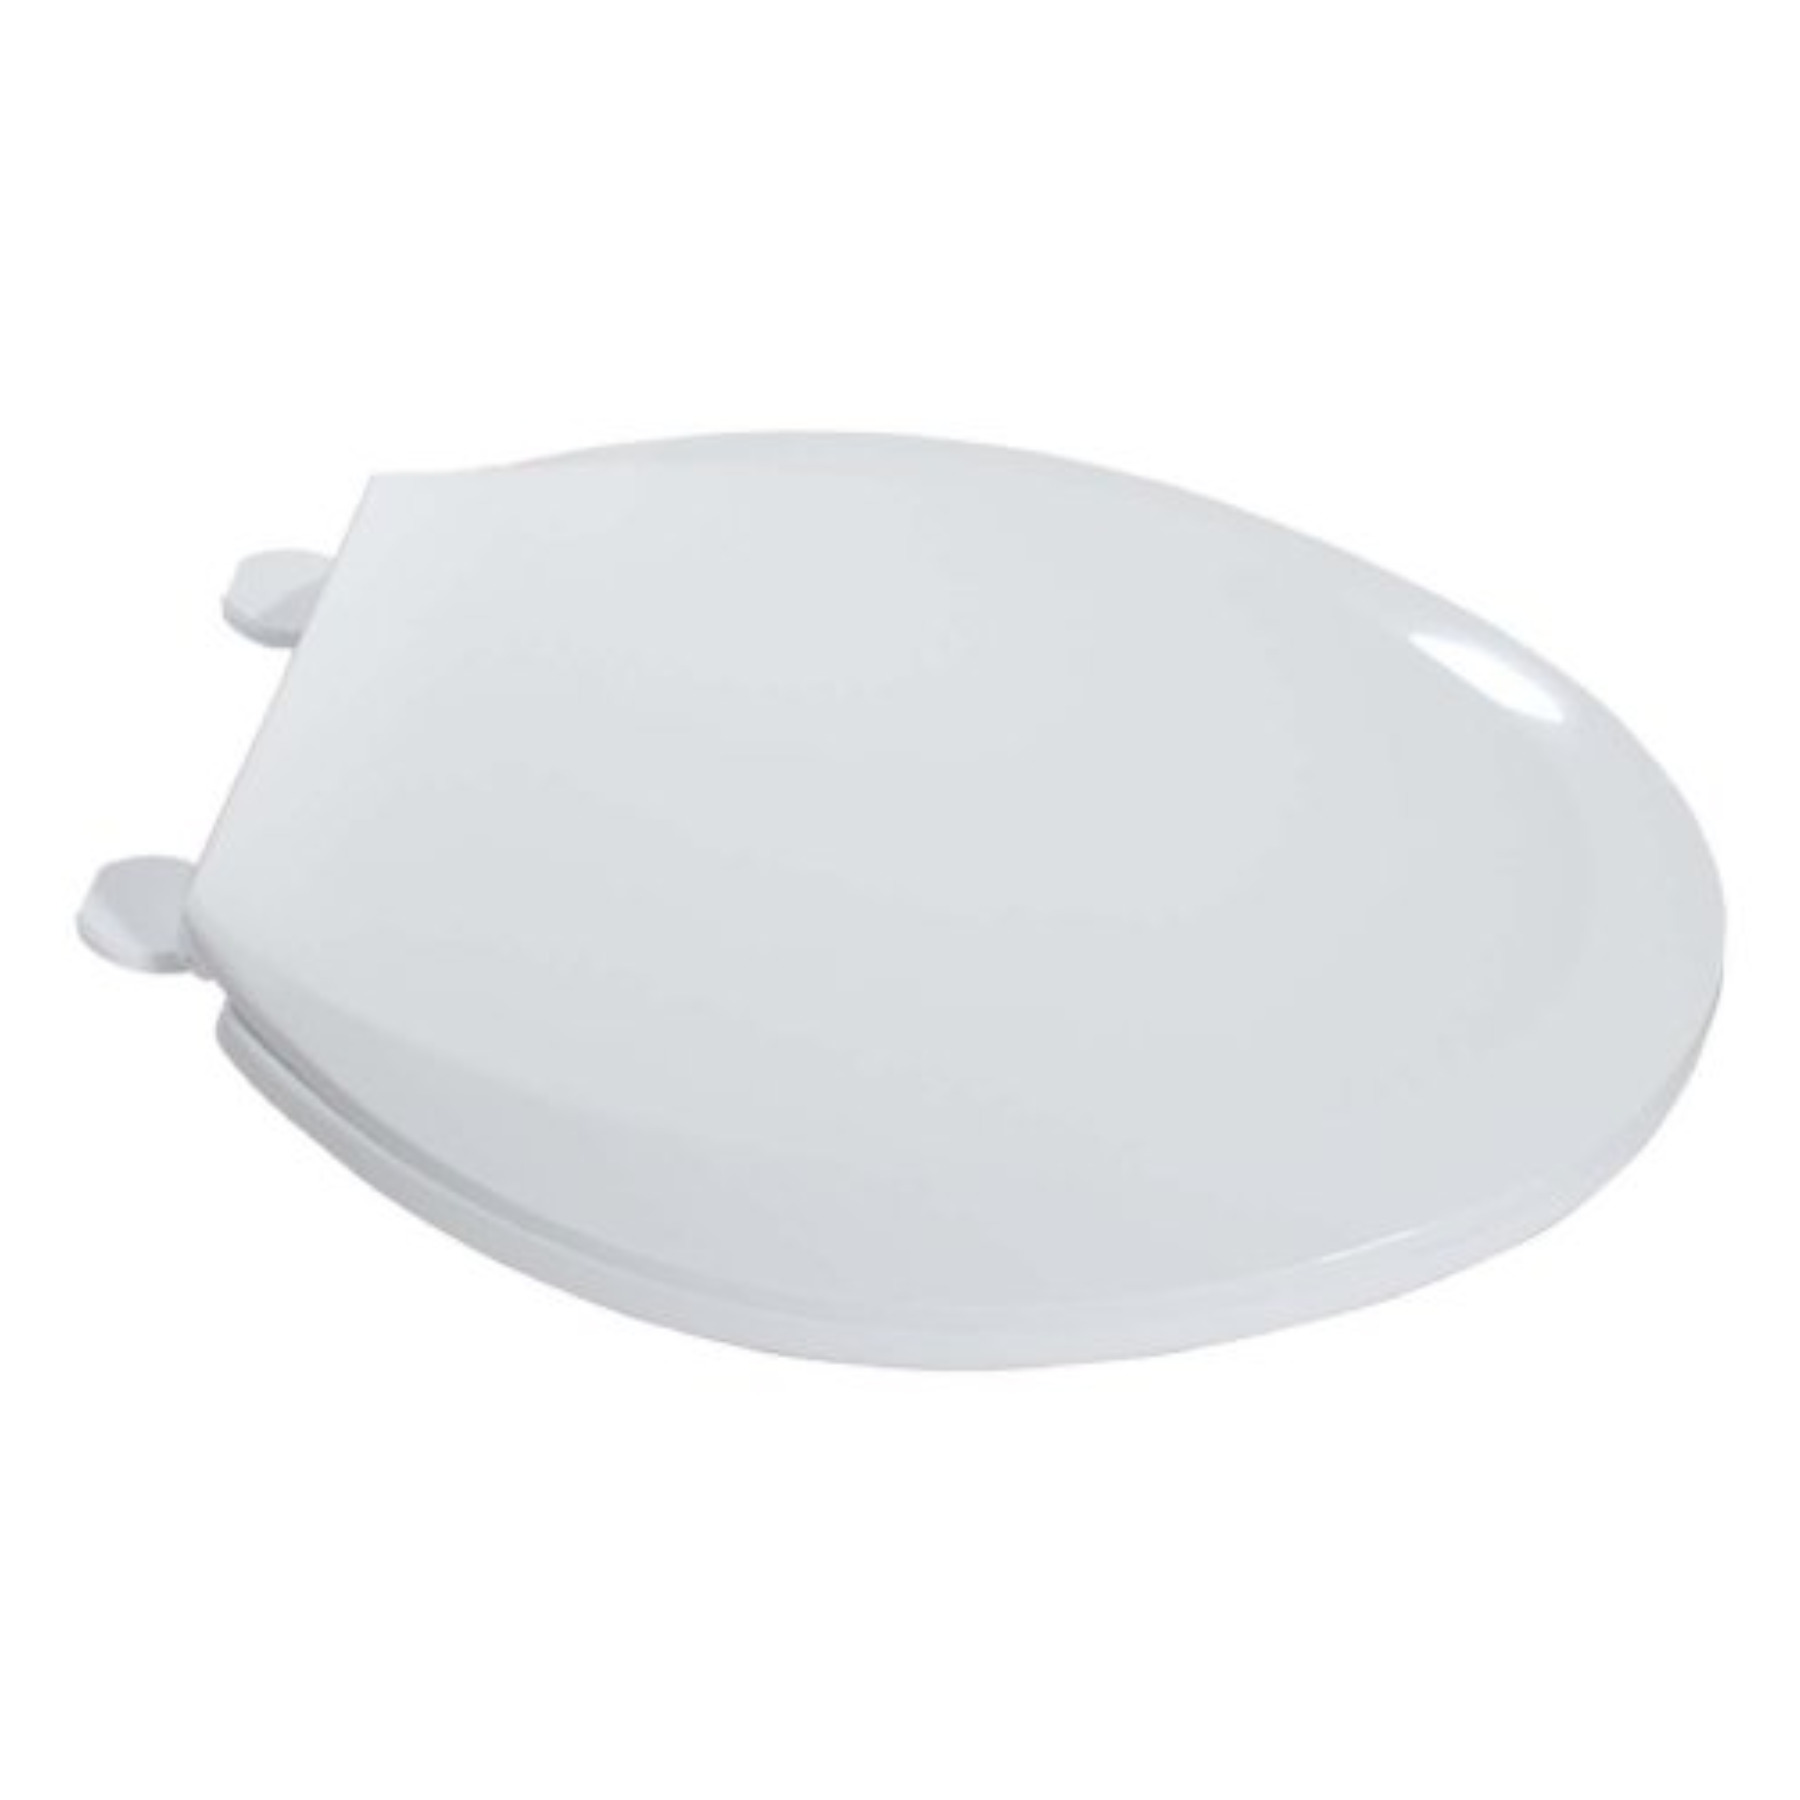 0502020Wt White Elongated Plastic Toilet Seat